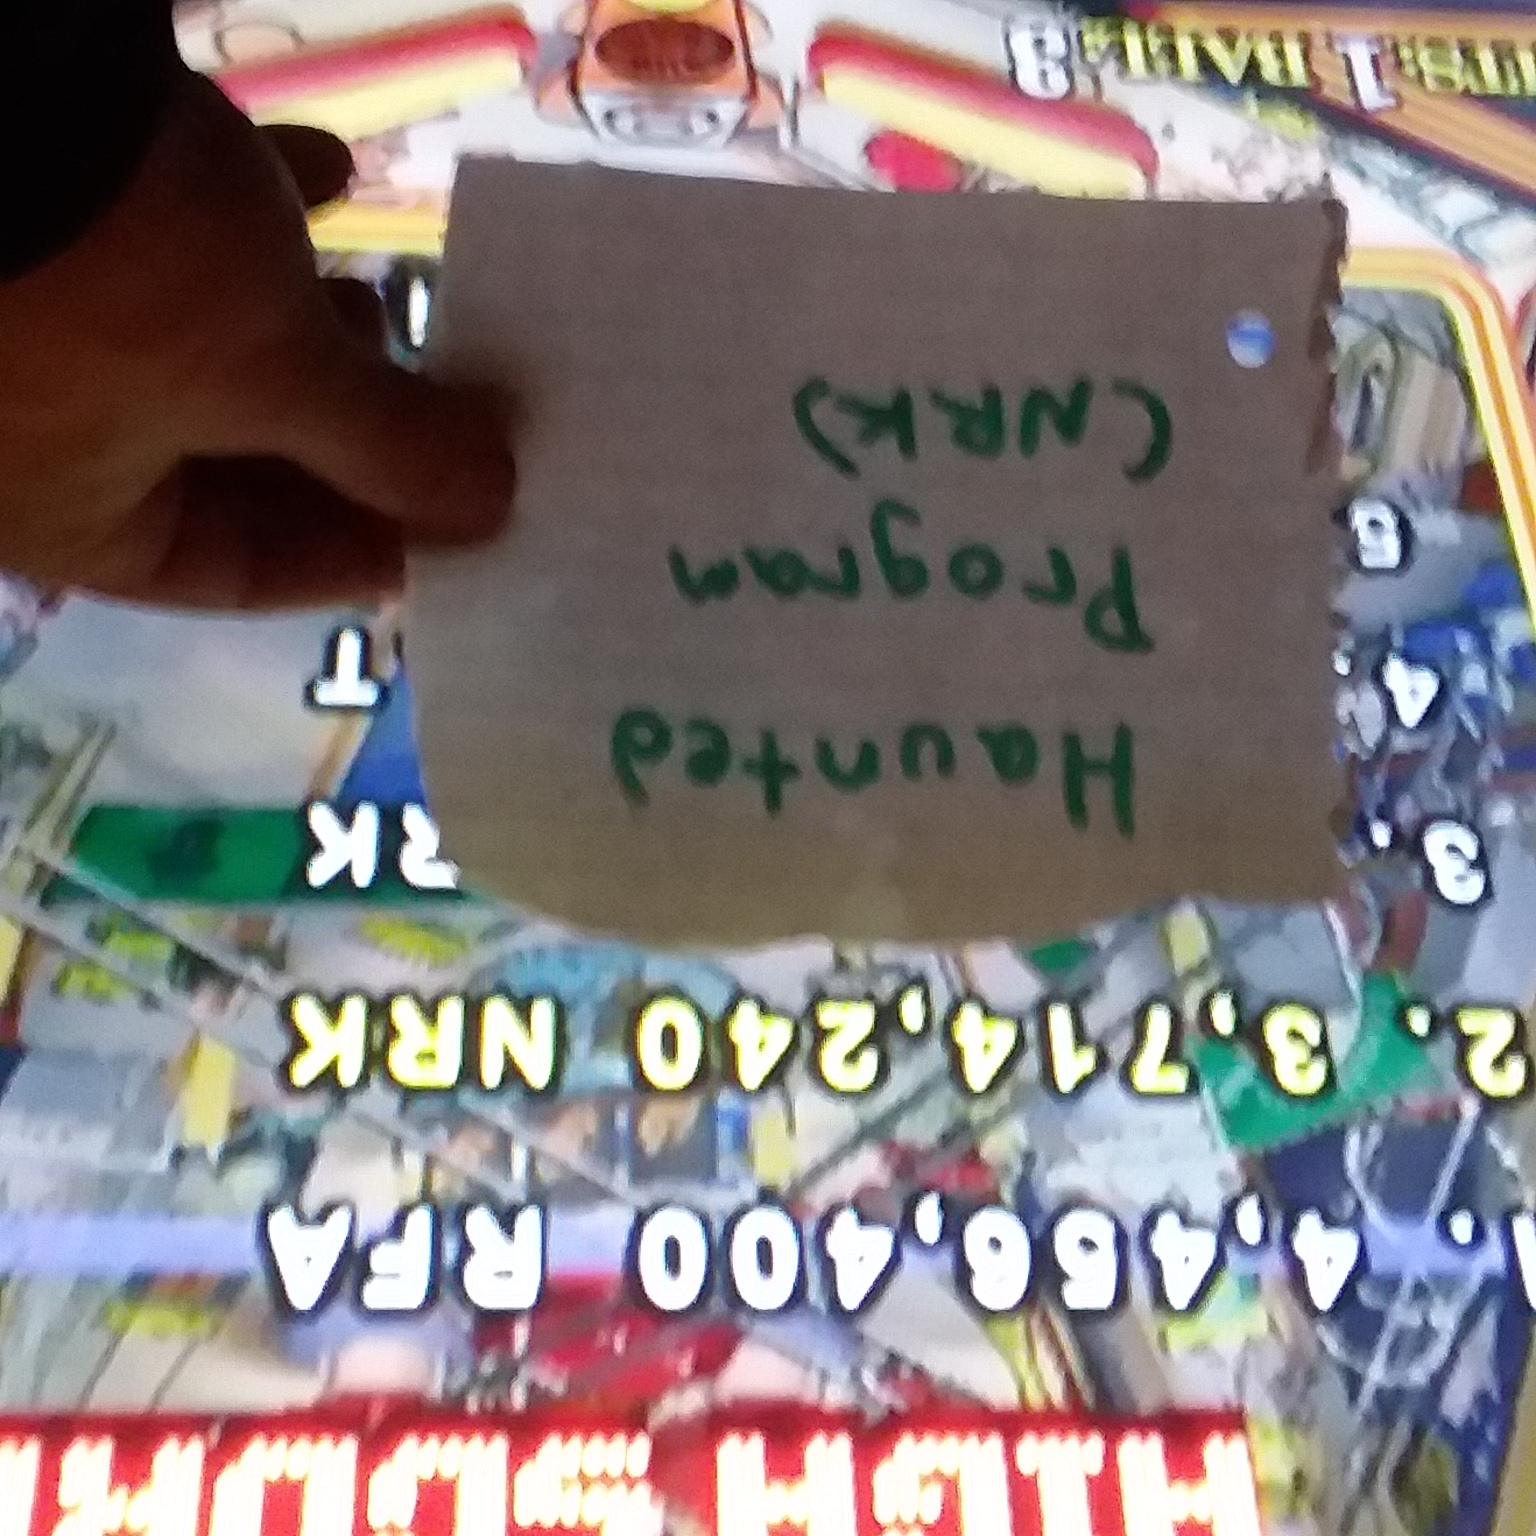 Hauntedprogram: Pinball Hall of Fame: The Williams Collection: Taxi (Wii) 3,714,240 points on 2020-11-11 23:06:36